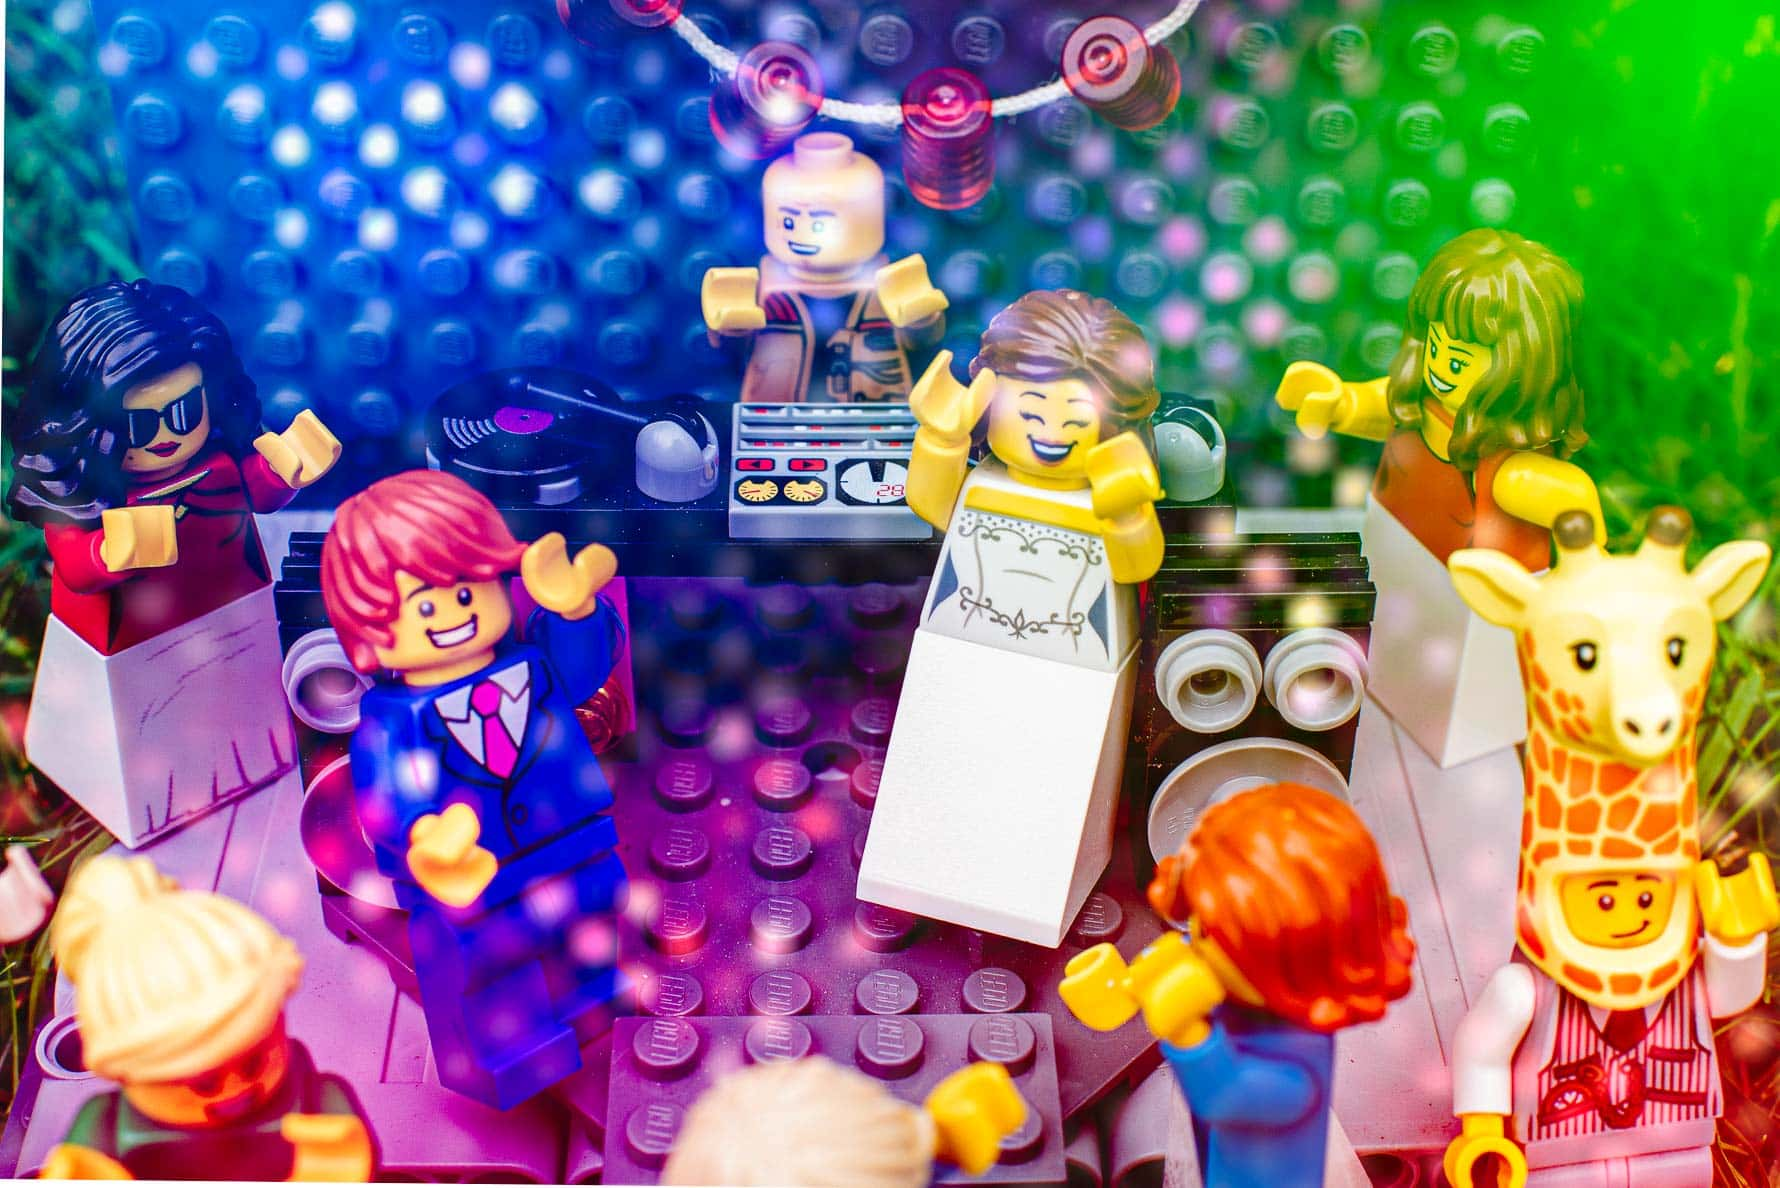 Lego Wedding guests partying on the dance floor